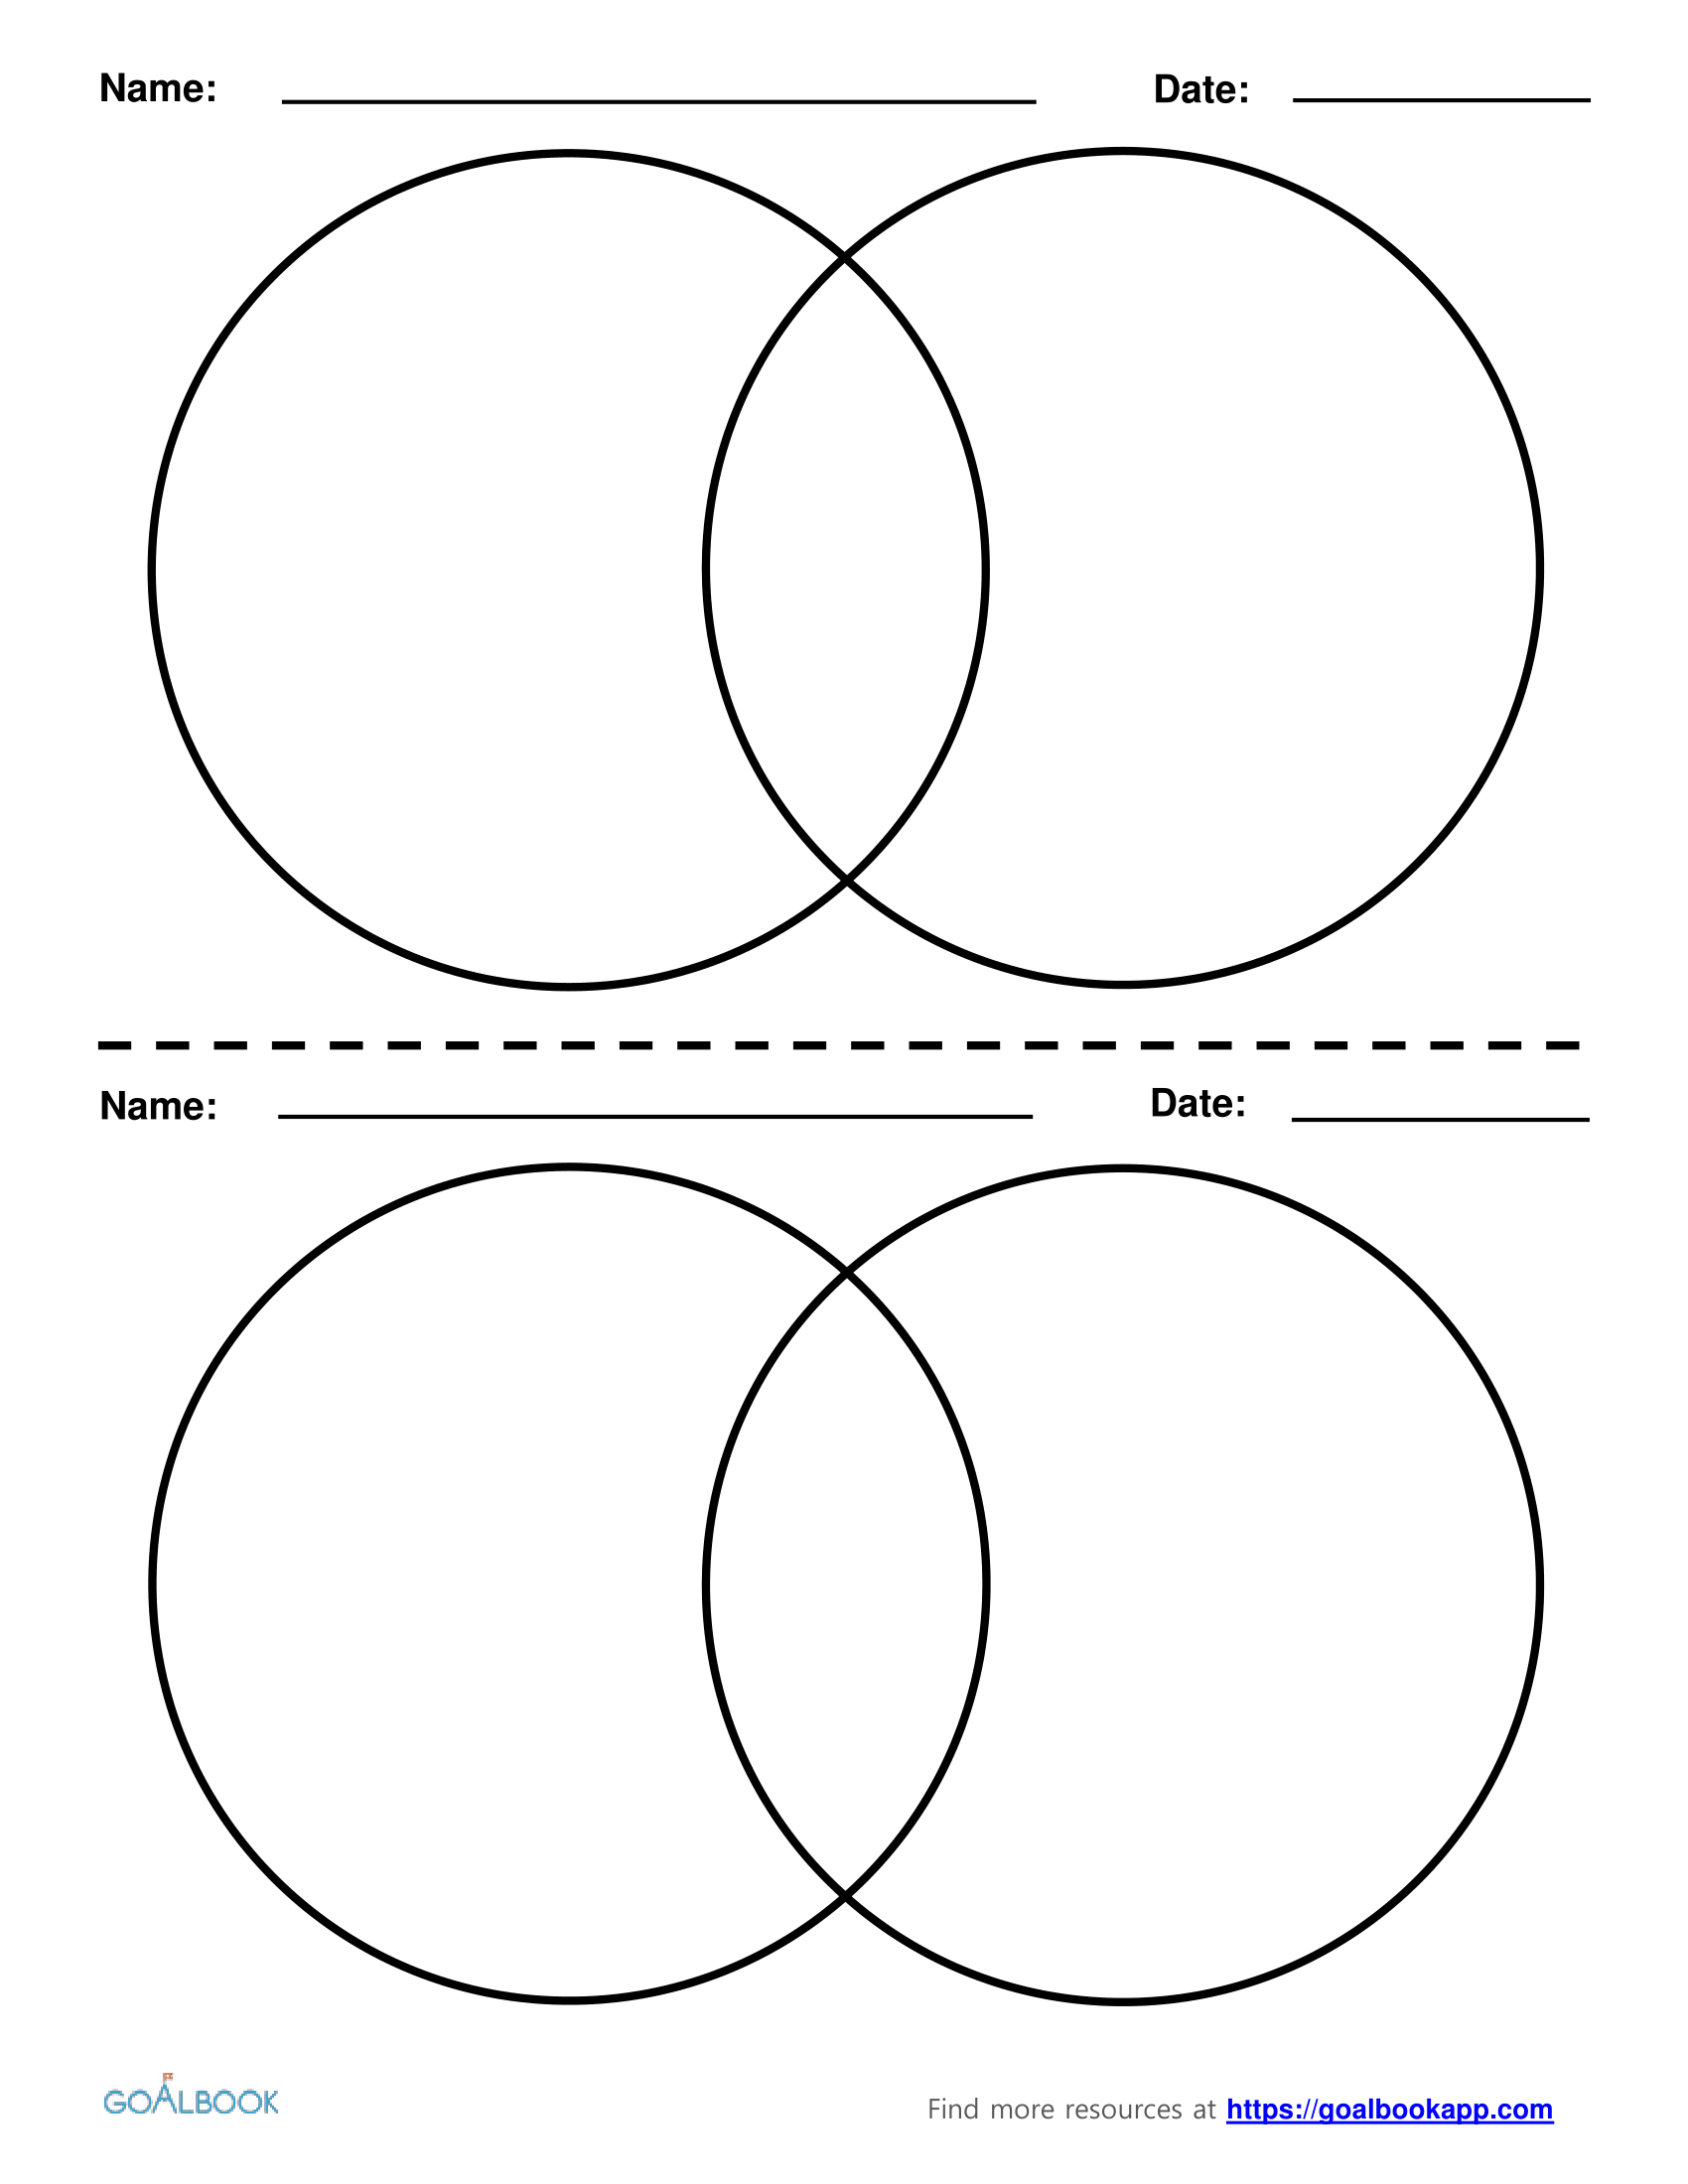 Venn Diagram Printable Printable Venn Diagram 2 Circles Download Them And Try To Solve